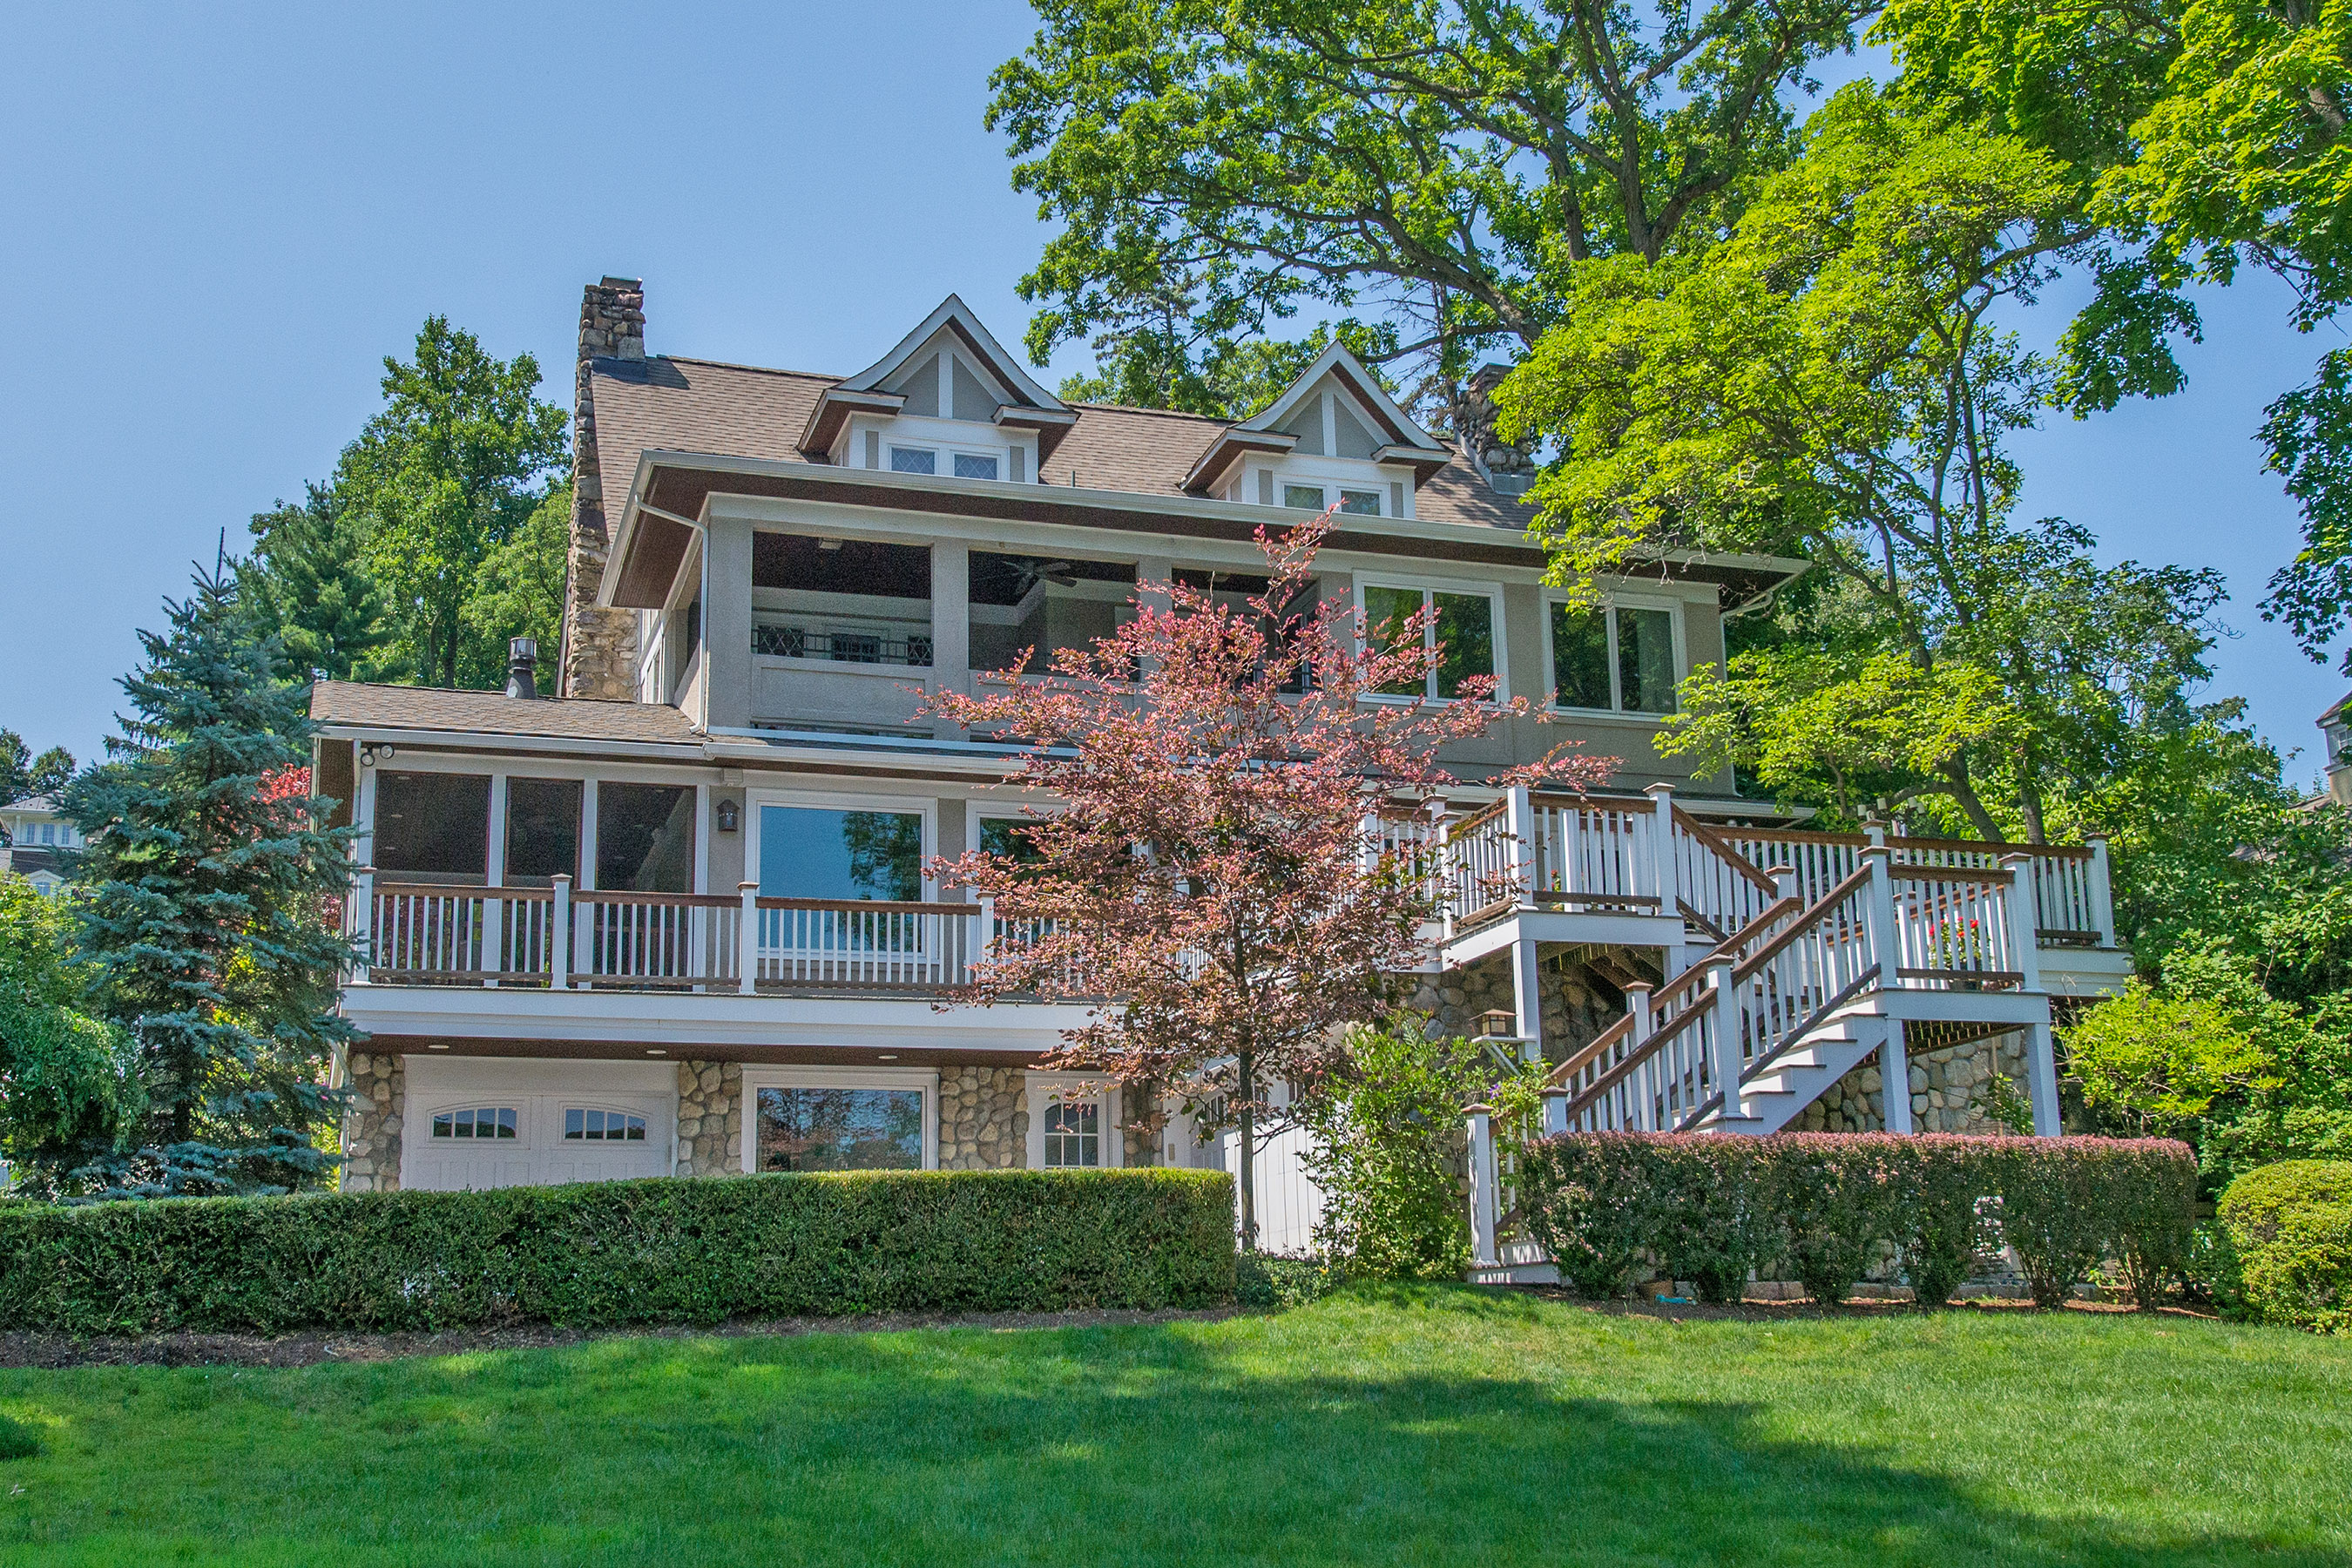 244 Blvd, Mountain Lakes, NJ 07046